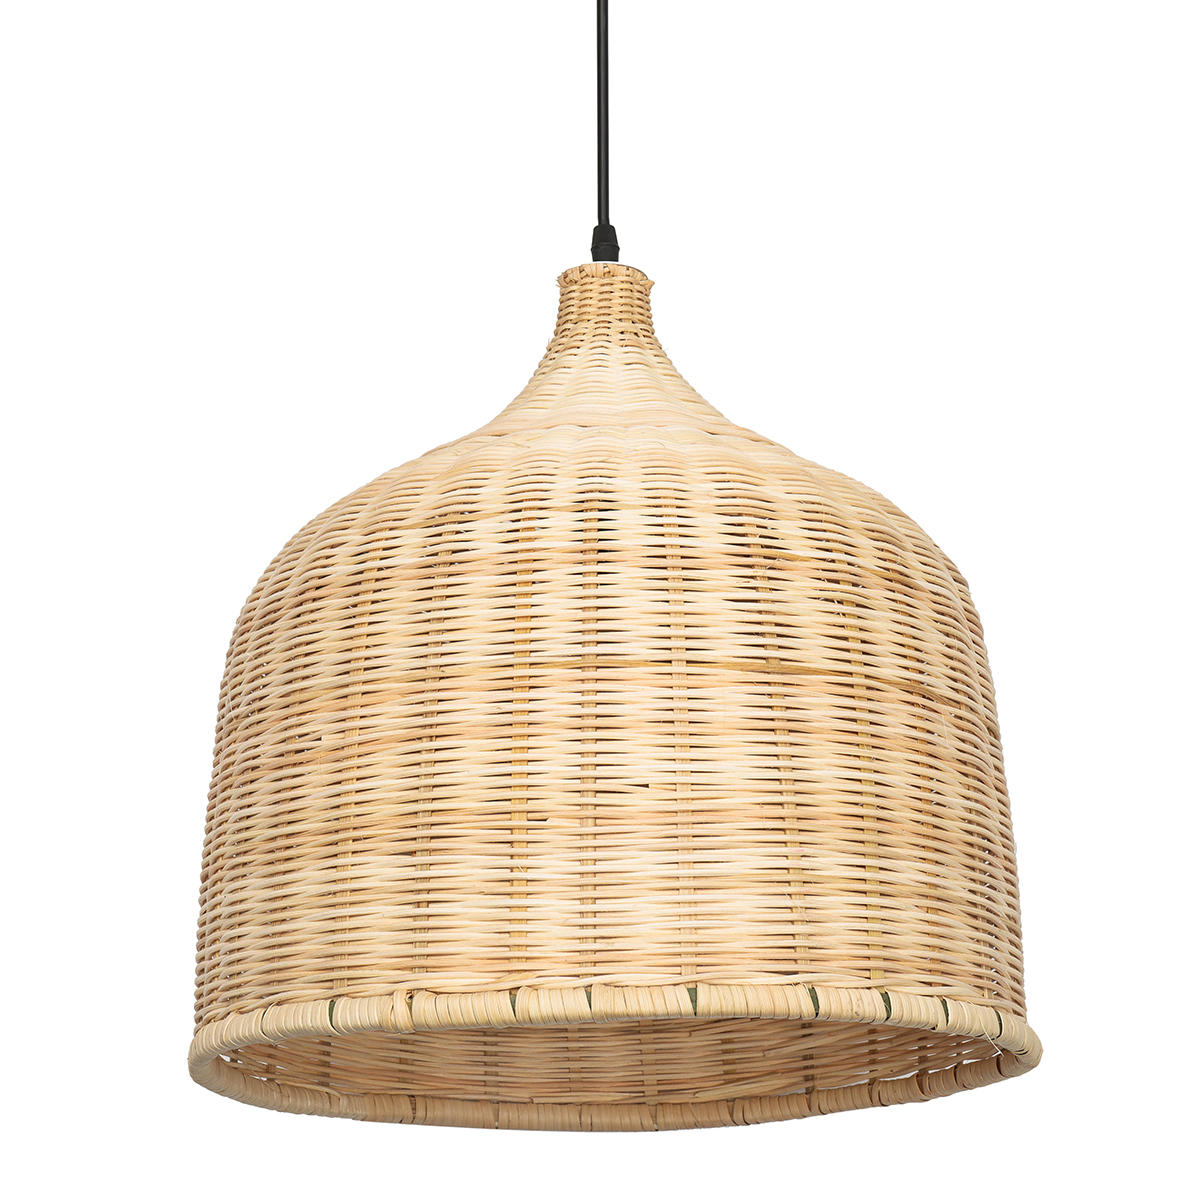 the latest 7de78 a3691 E27 Modern Rattan Chandelier Pendant Light Ceiling Lamp Cover for Home  Indoor Decoration